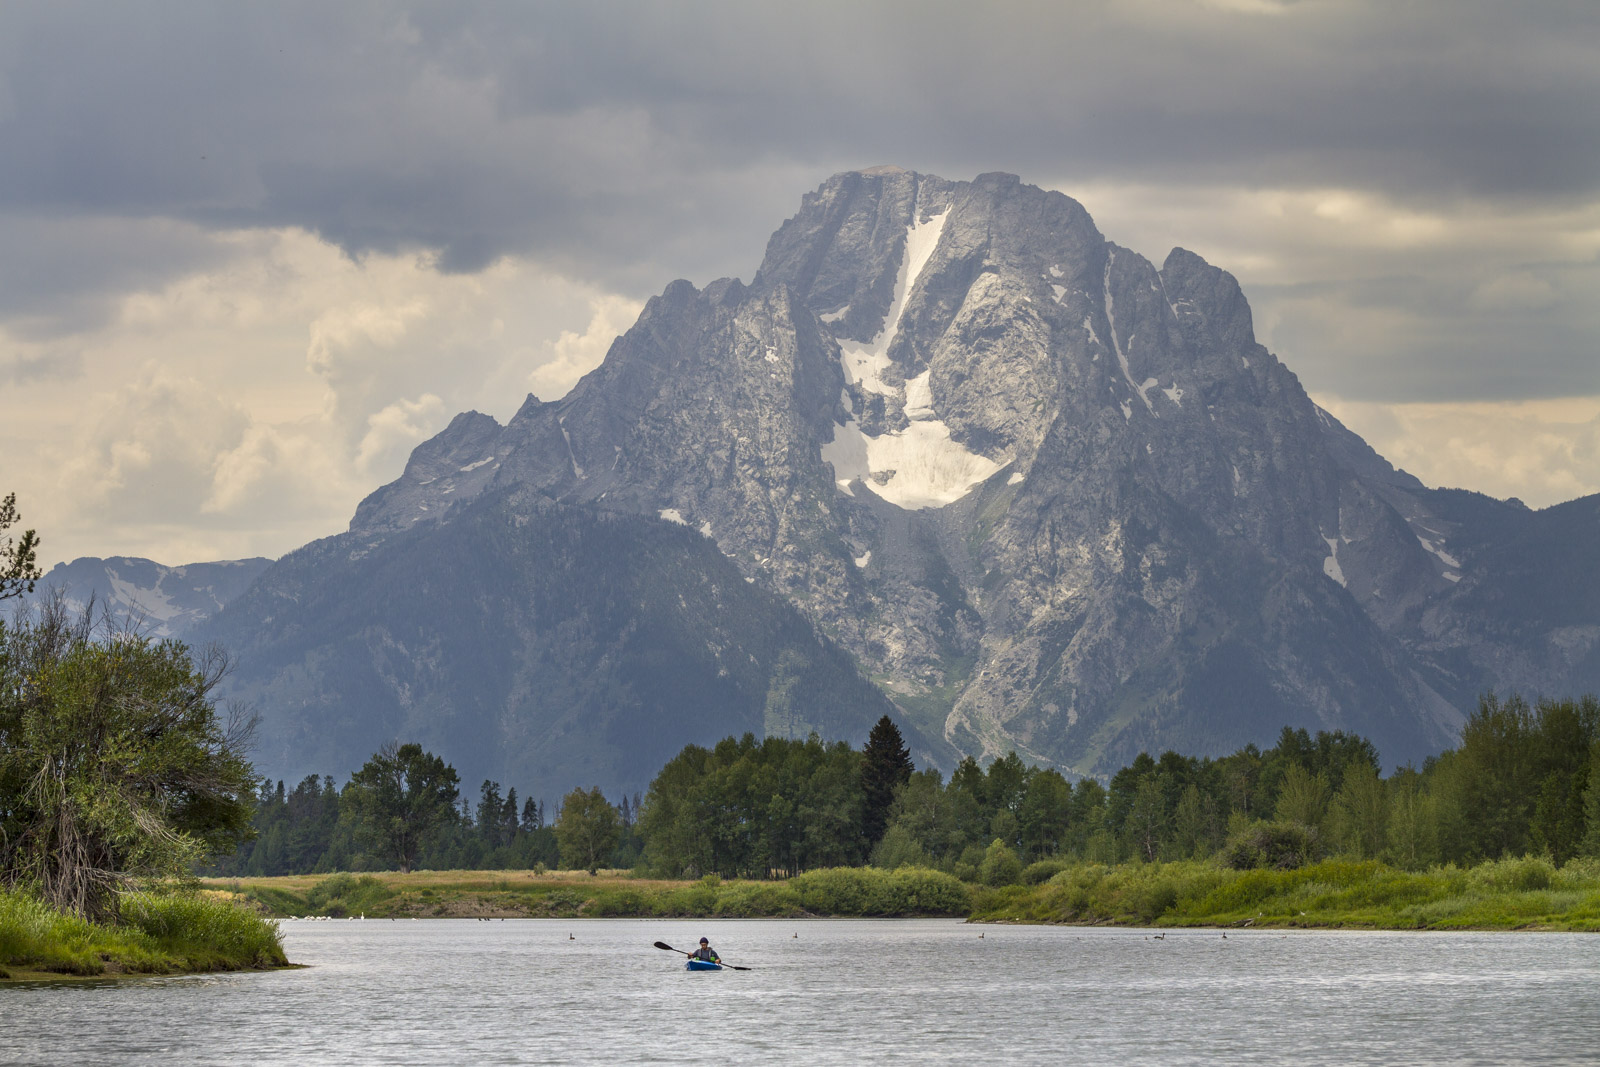 Mt. Moran, Teton National Park (USA)